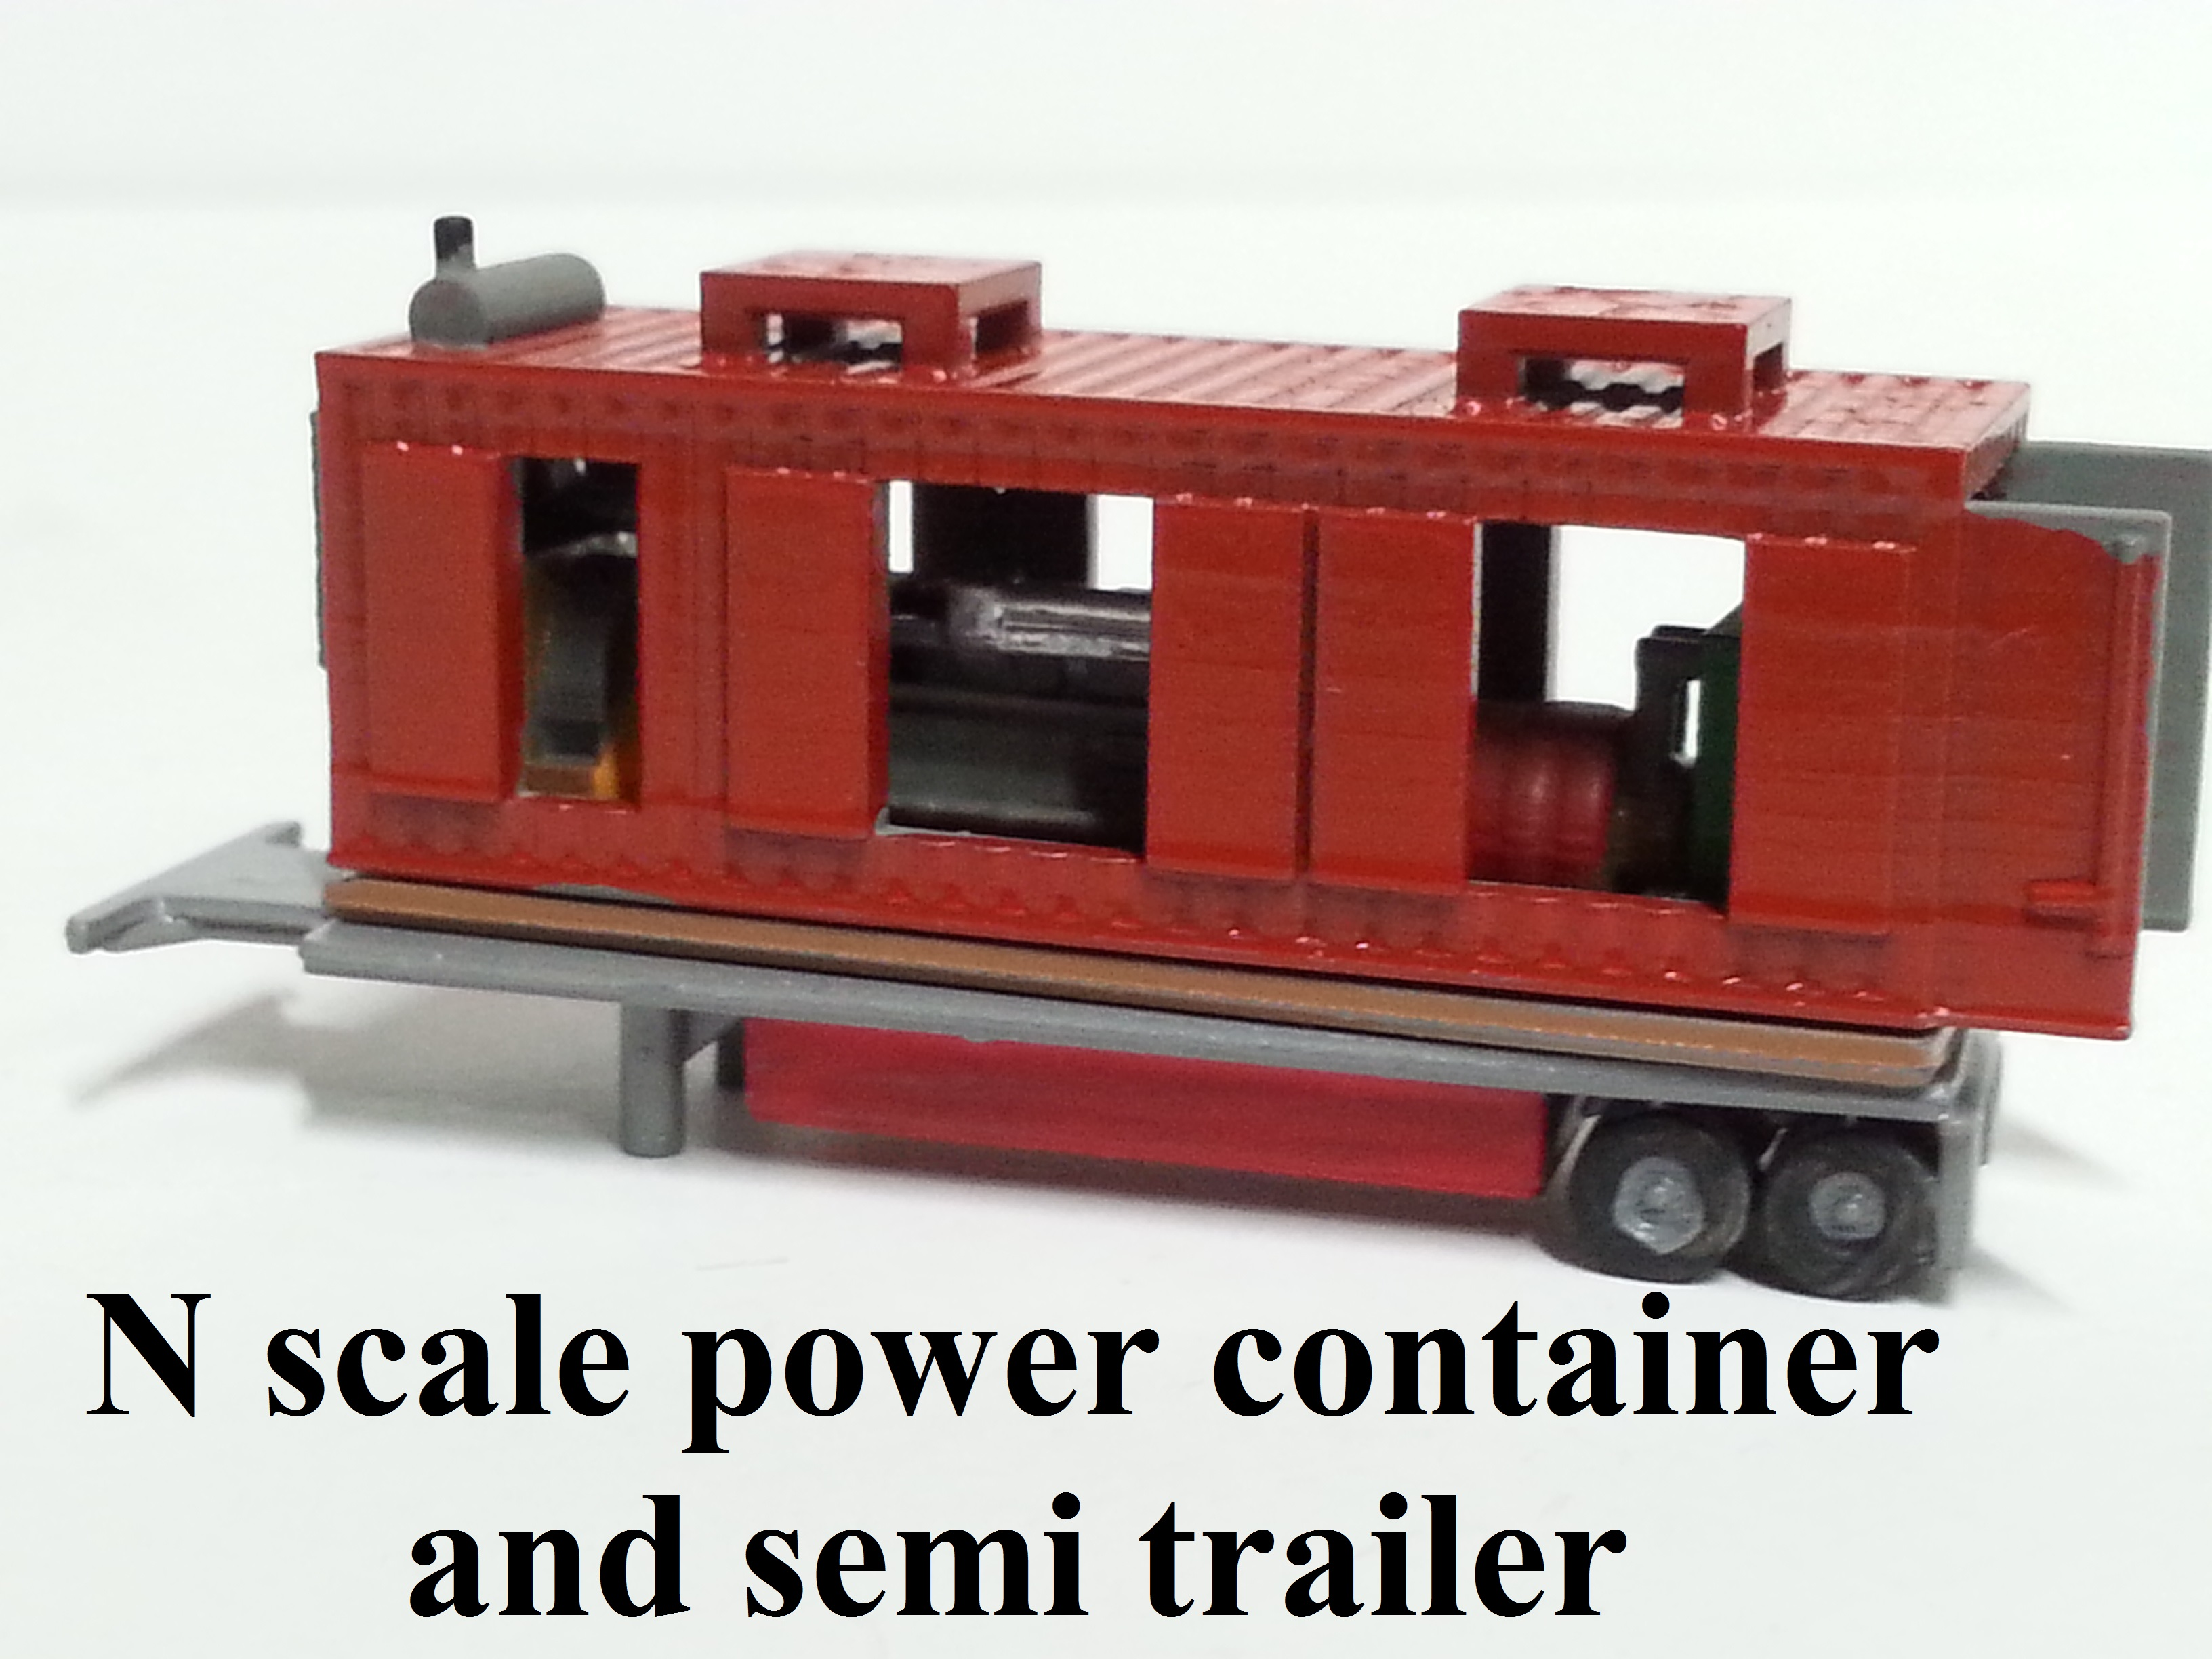 N scale M of W Power container gen. set and semi trailer